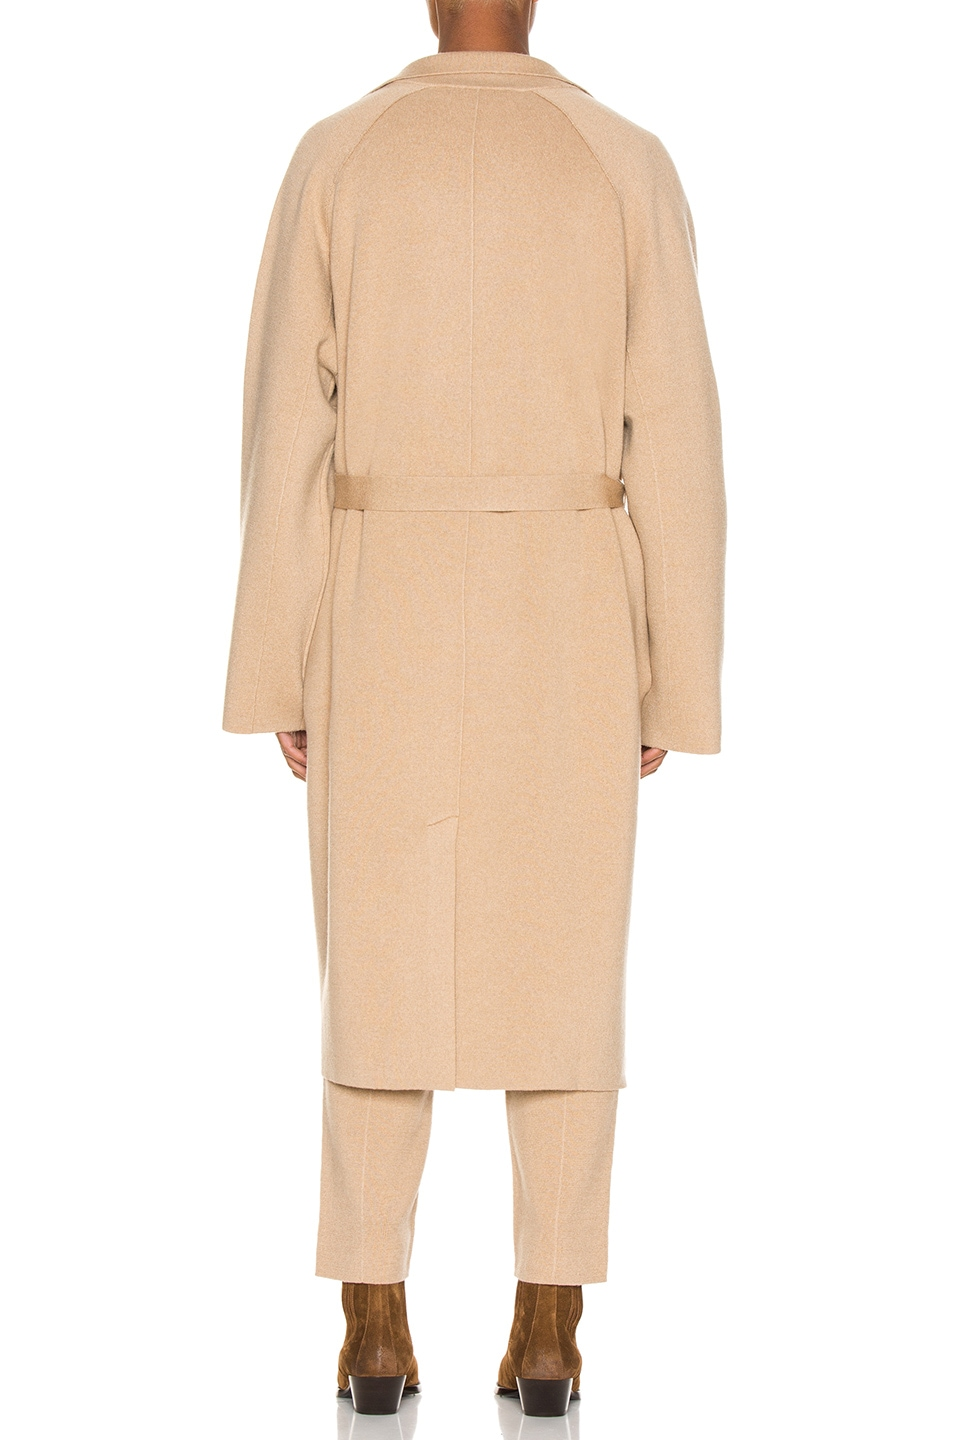 Image 4 of Haider Ackermann Knitted Coat in Invidia Camel